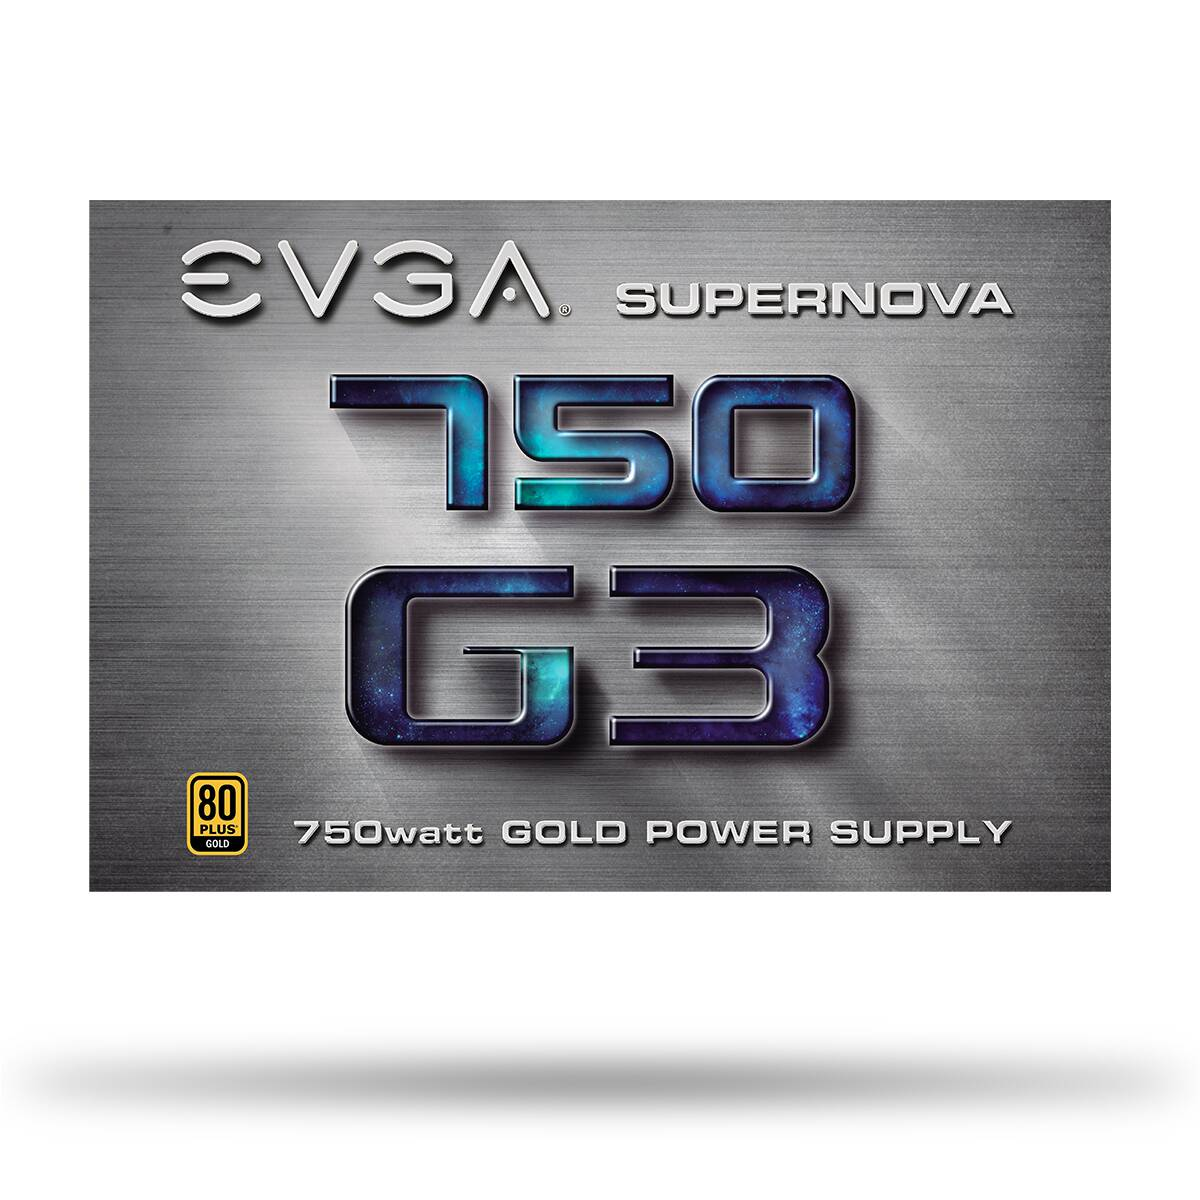 hight resolution of evga supernova 750 g3 80 plus gold 750w fully modular eco mode with new hdb fan 10 year warranty includes power on self tester compact 150mm size